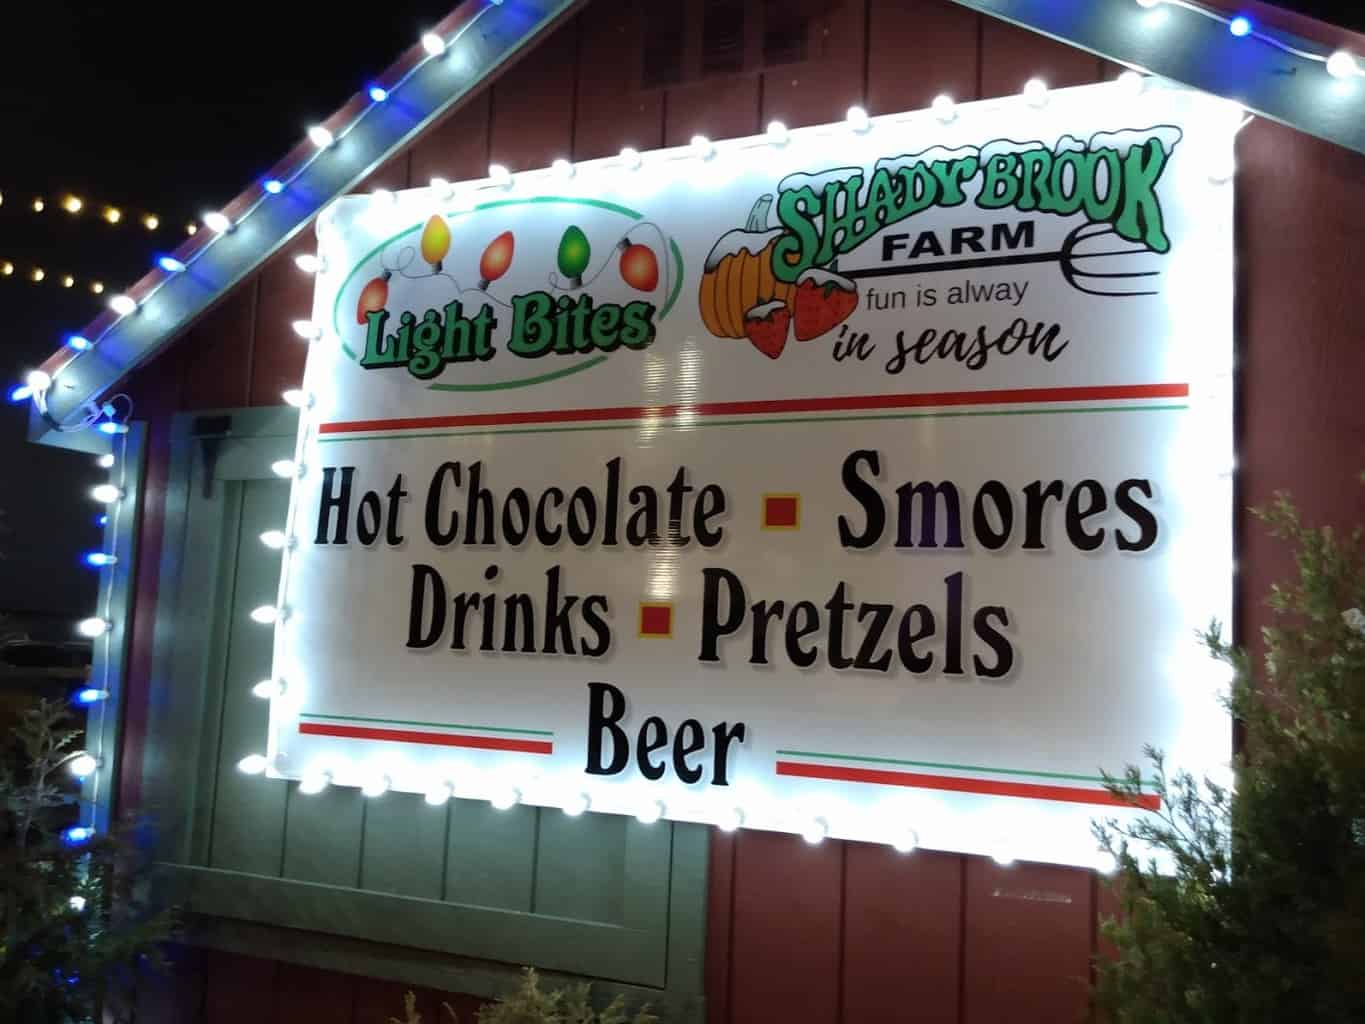 Hot Chocolate, Smores, Drinks, Pretzels and Beer at Shadybrook Farm